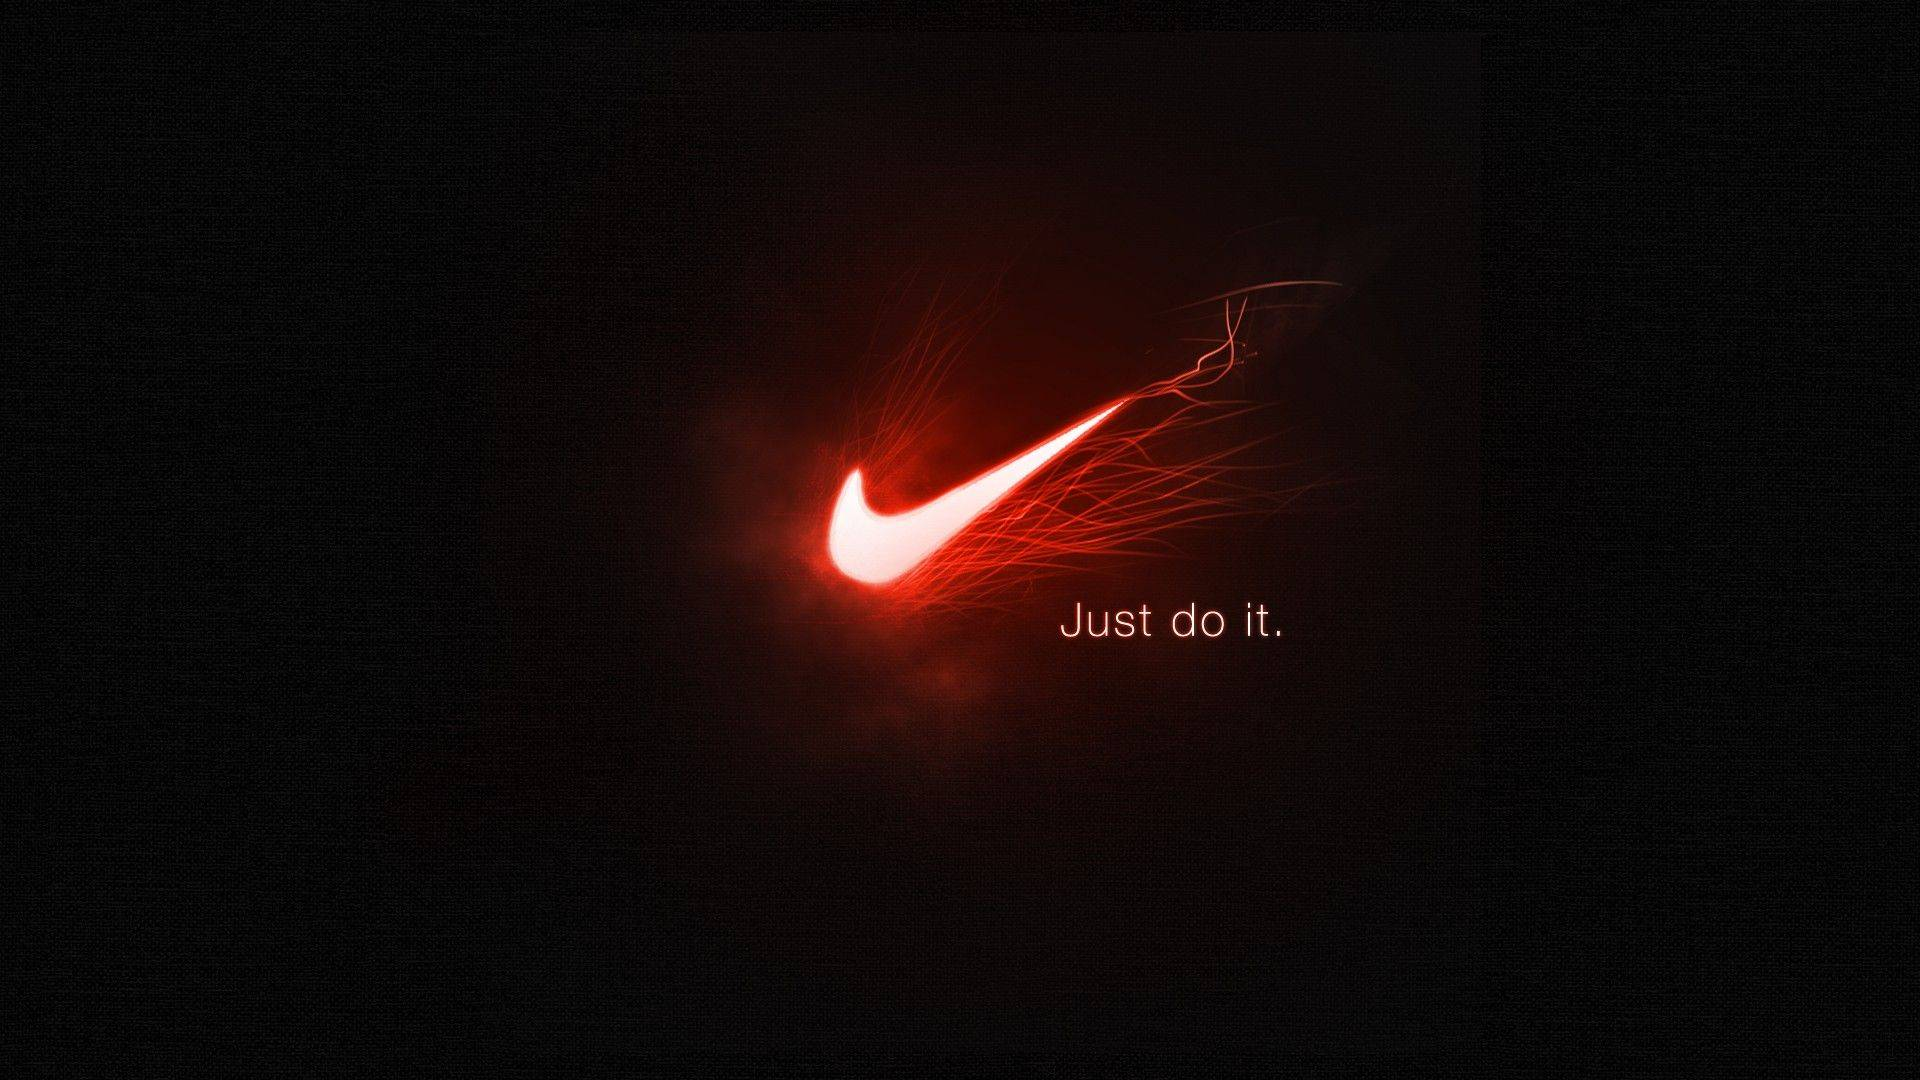 nike logo 3d wallpaper 893698